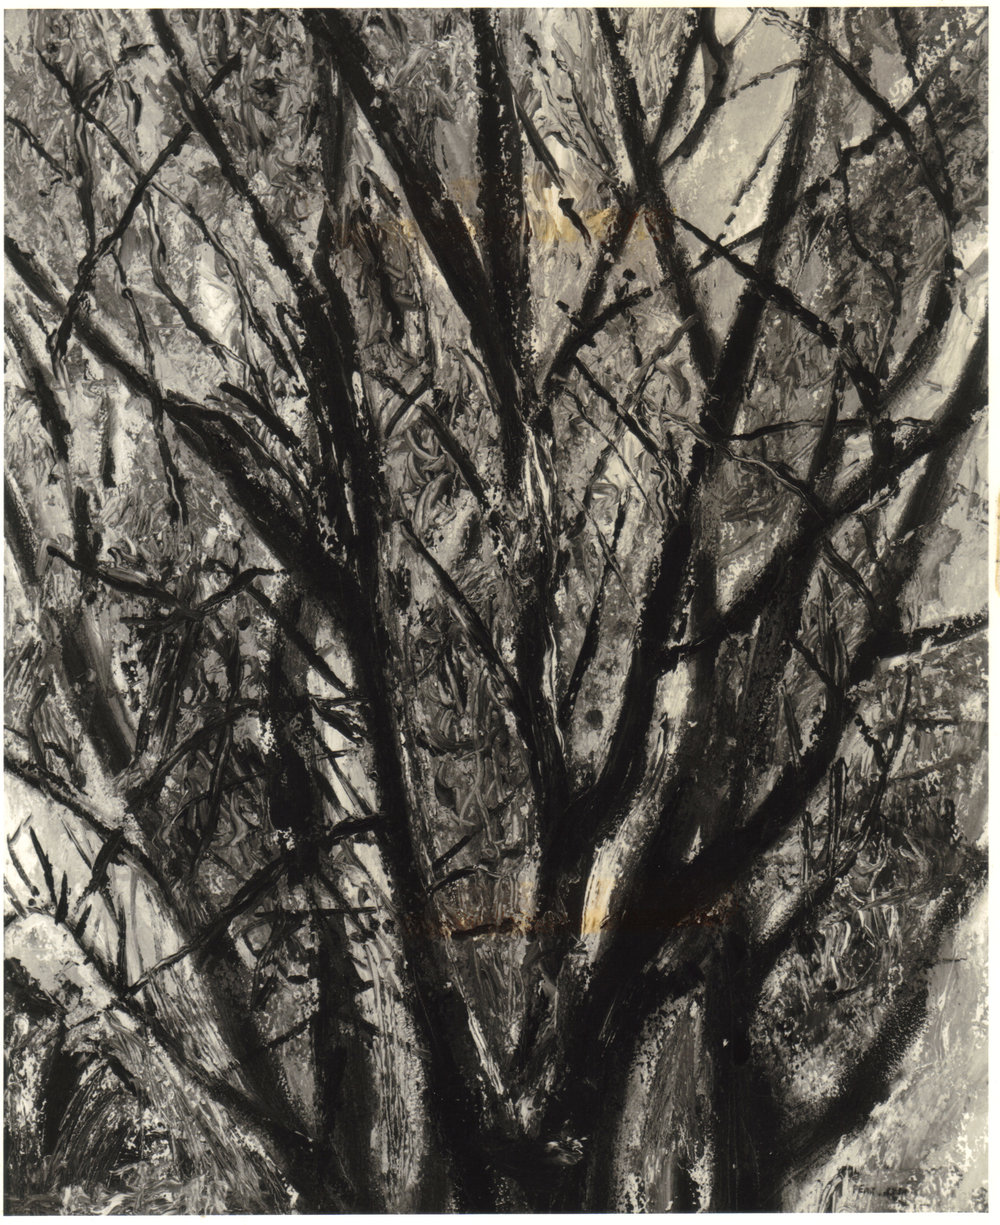 28. 1948, Tree Branches, Oil on board, 20x17, 1948.jpg